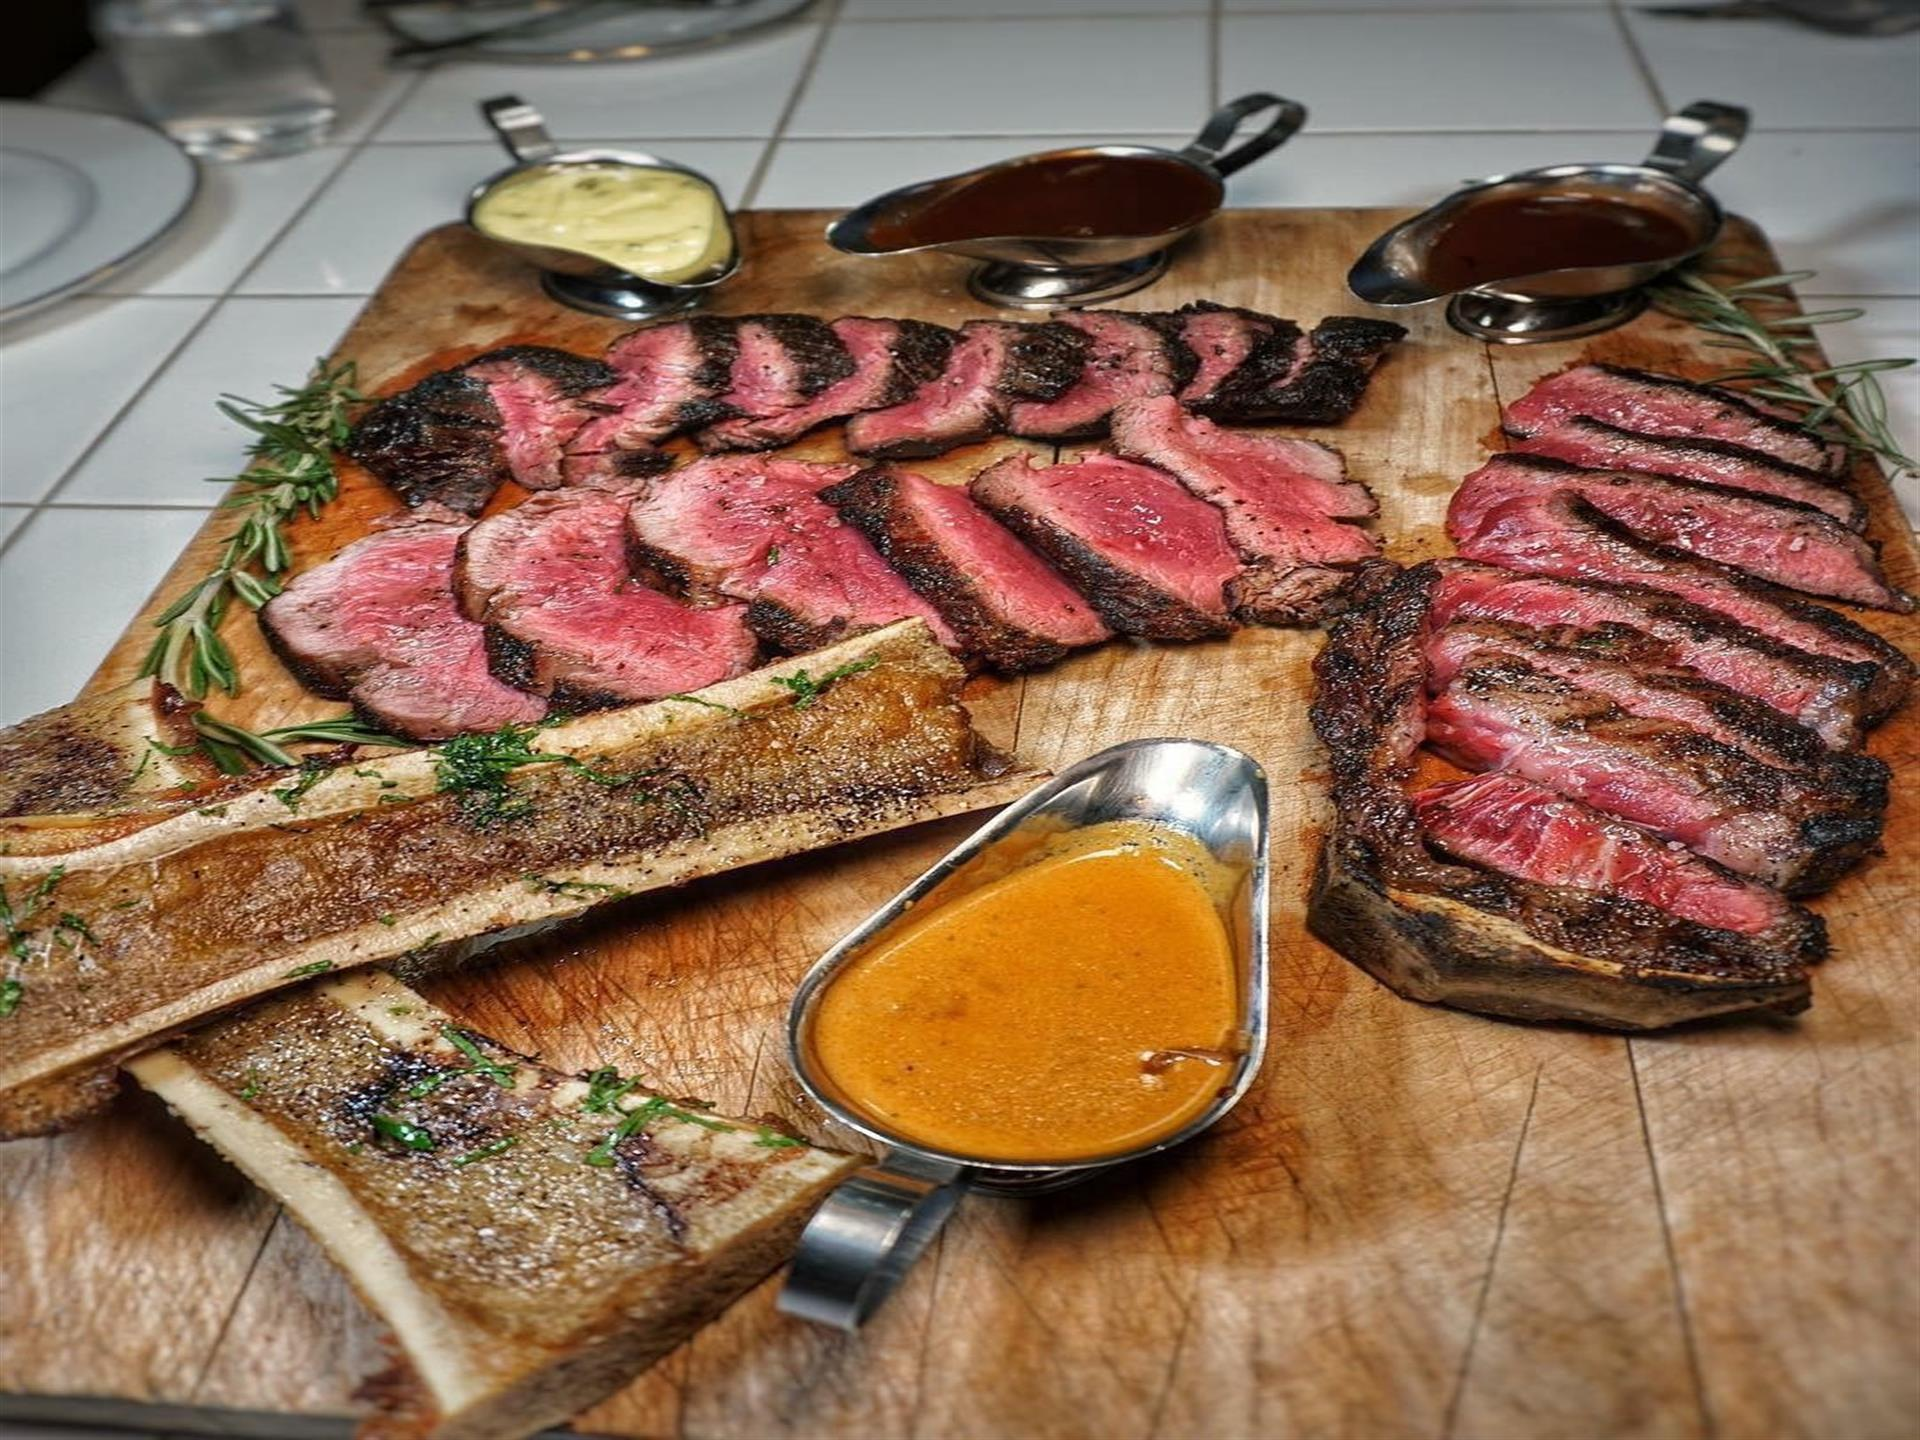 slices steak with sauces on a cutting board